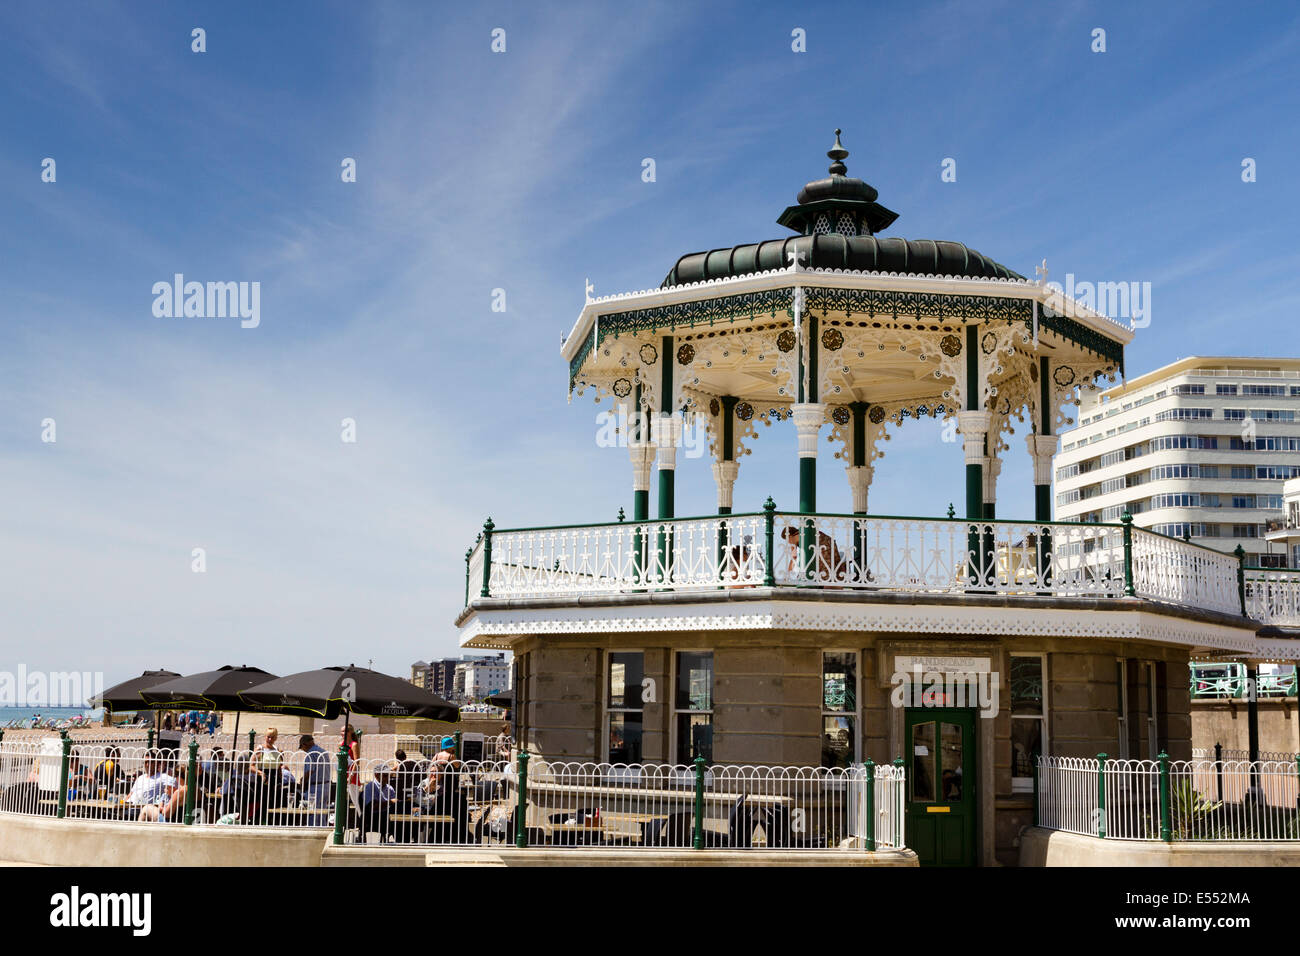 Brighton Bandstand cafe, East Sussex, England, UK - Stock Image